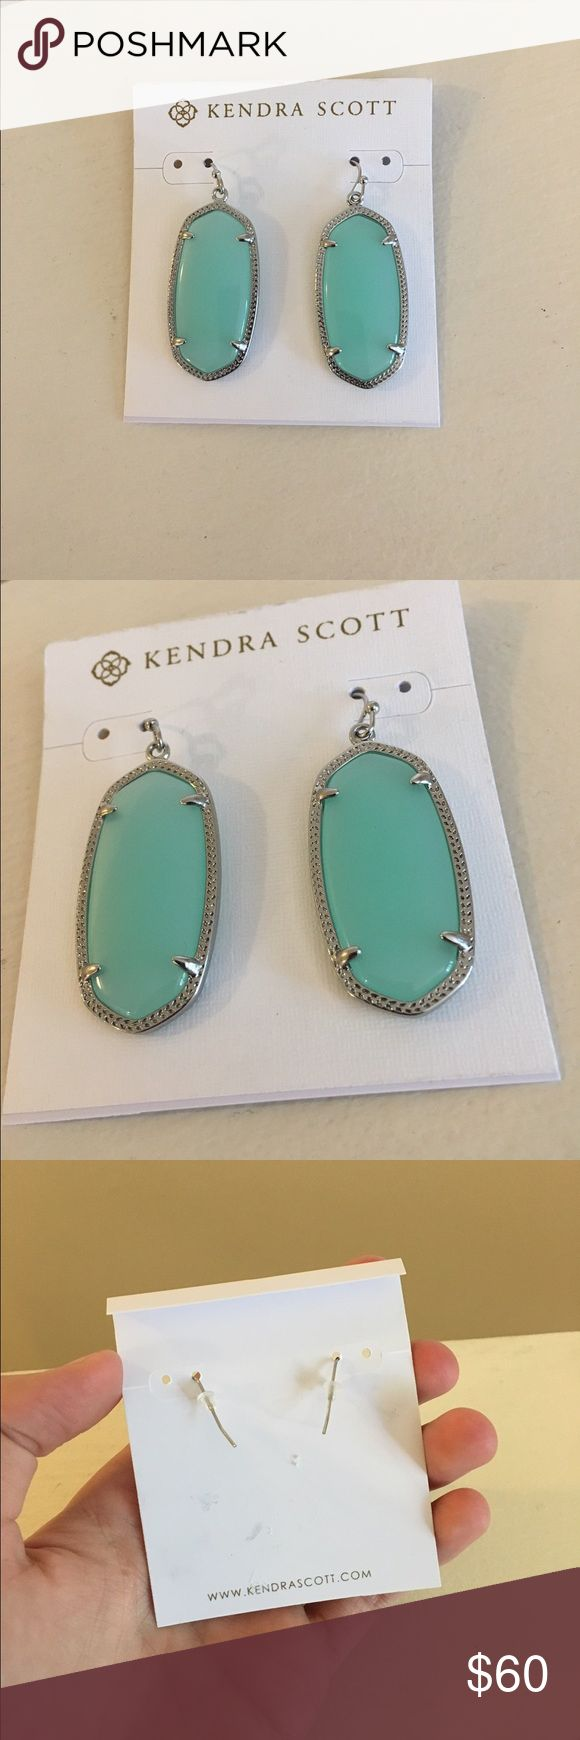 NWT Kendra Scott Earrings Turquoise and silver earrings by Kendra Scott in the style 'Danielle.' New with tags! Never worn, no flaws. Open to offers; bundles discounted! Kendra Scott Jewelry Earrings